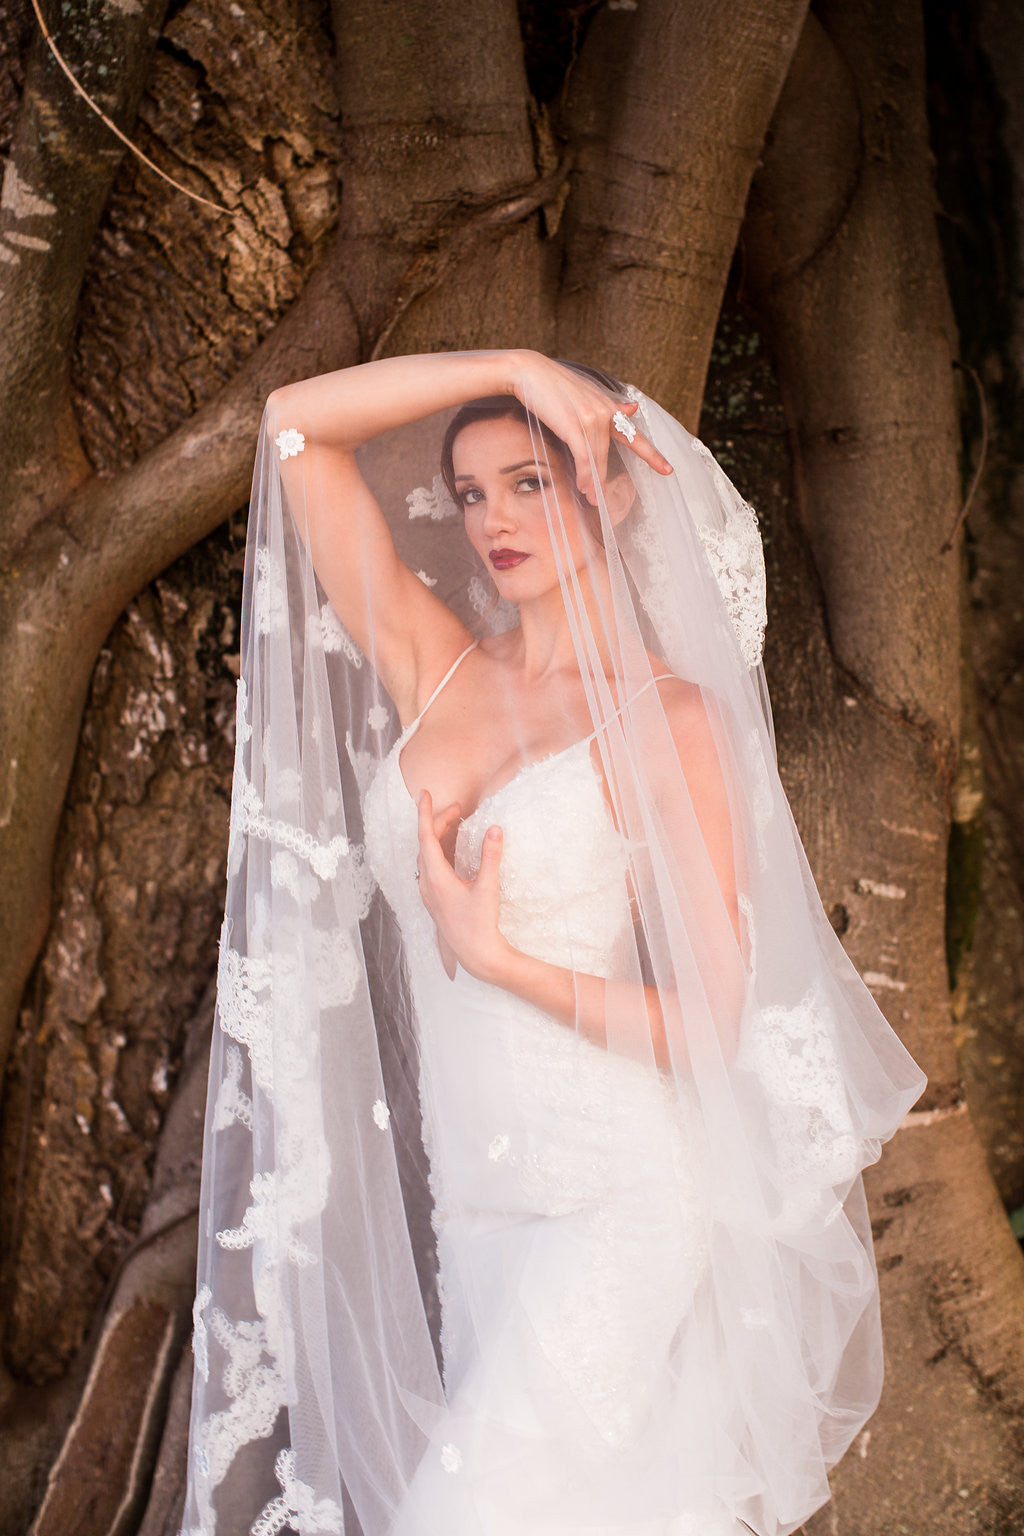 One-tier Cathedral Length Veil With Lace Appliqué Edge (#PB100) - Dream Dresses by P.M.N  - 6